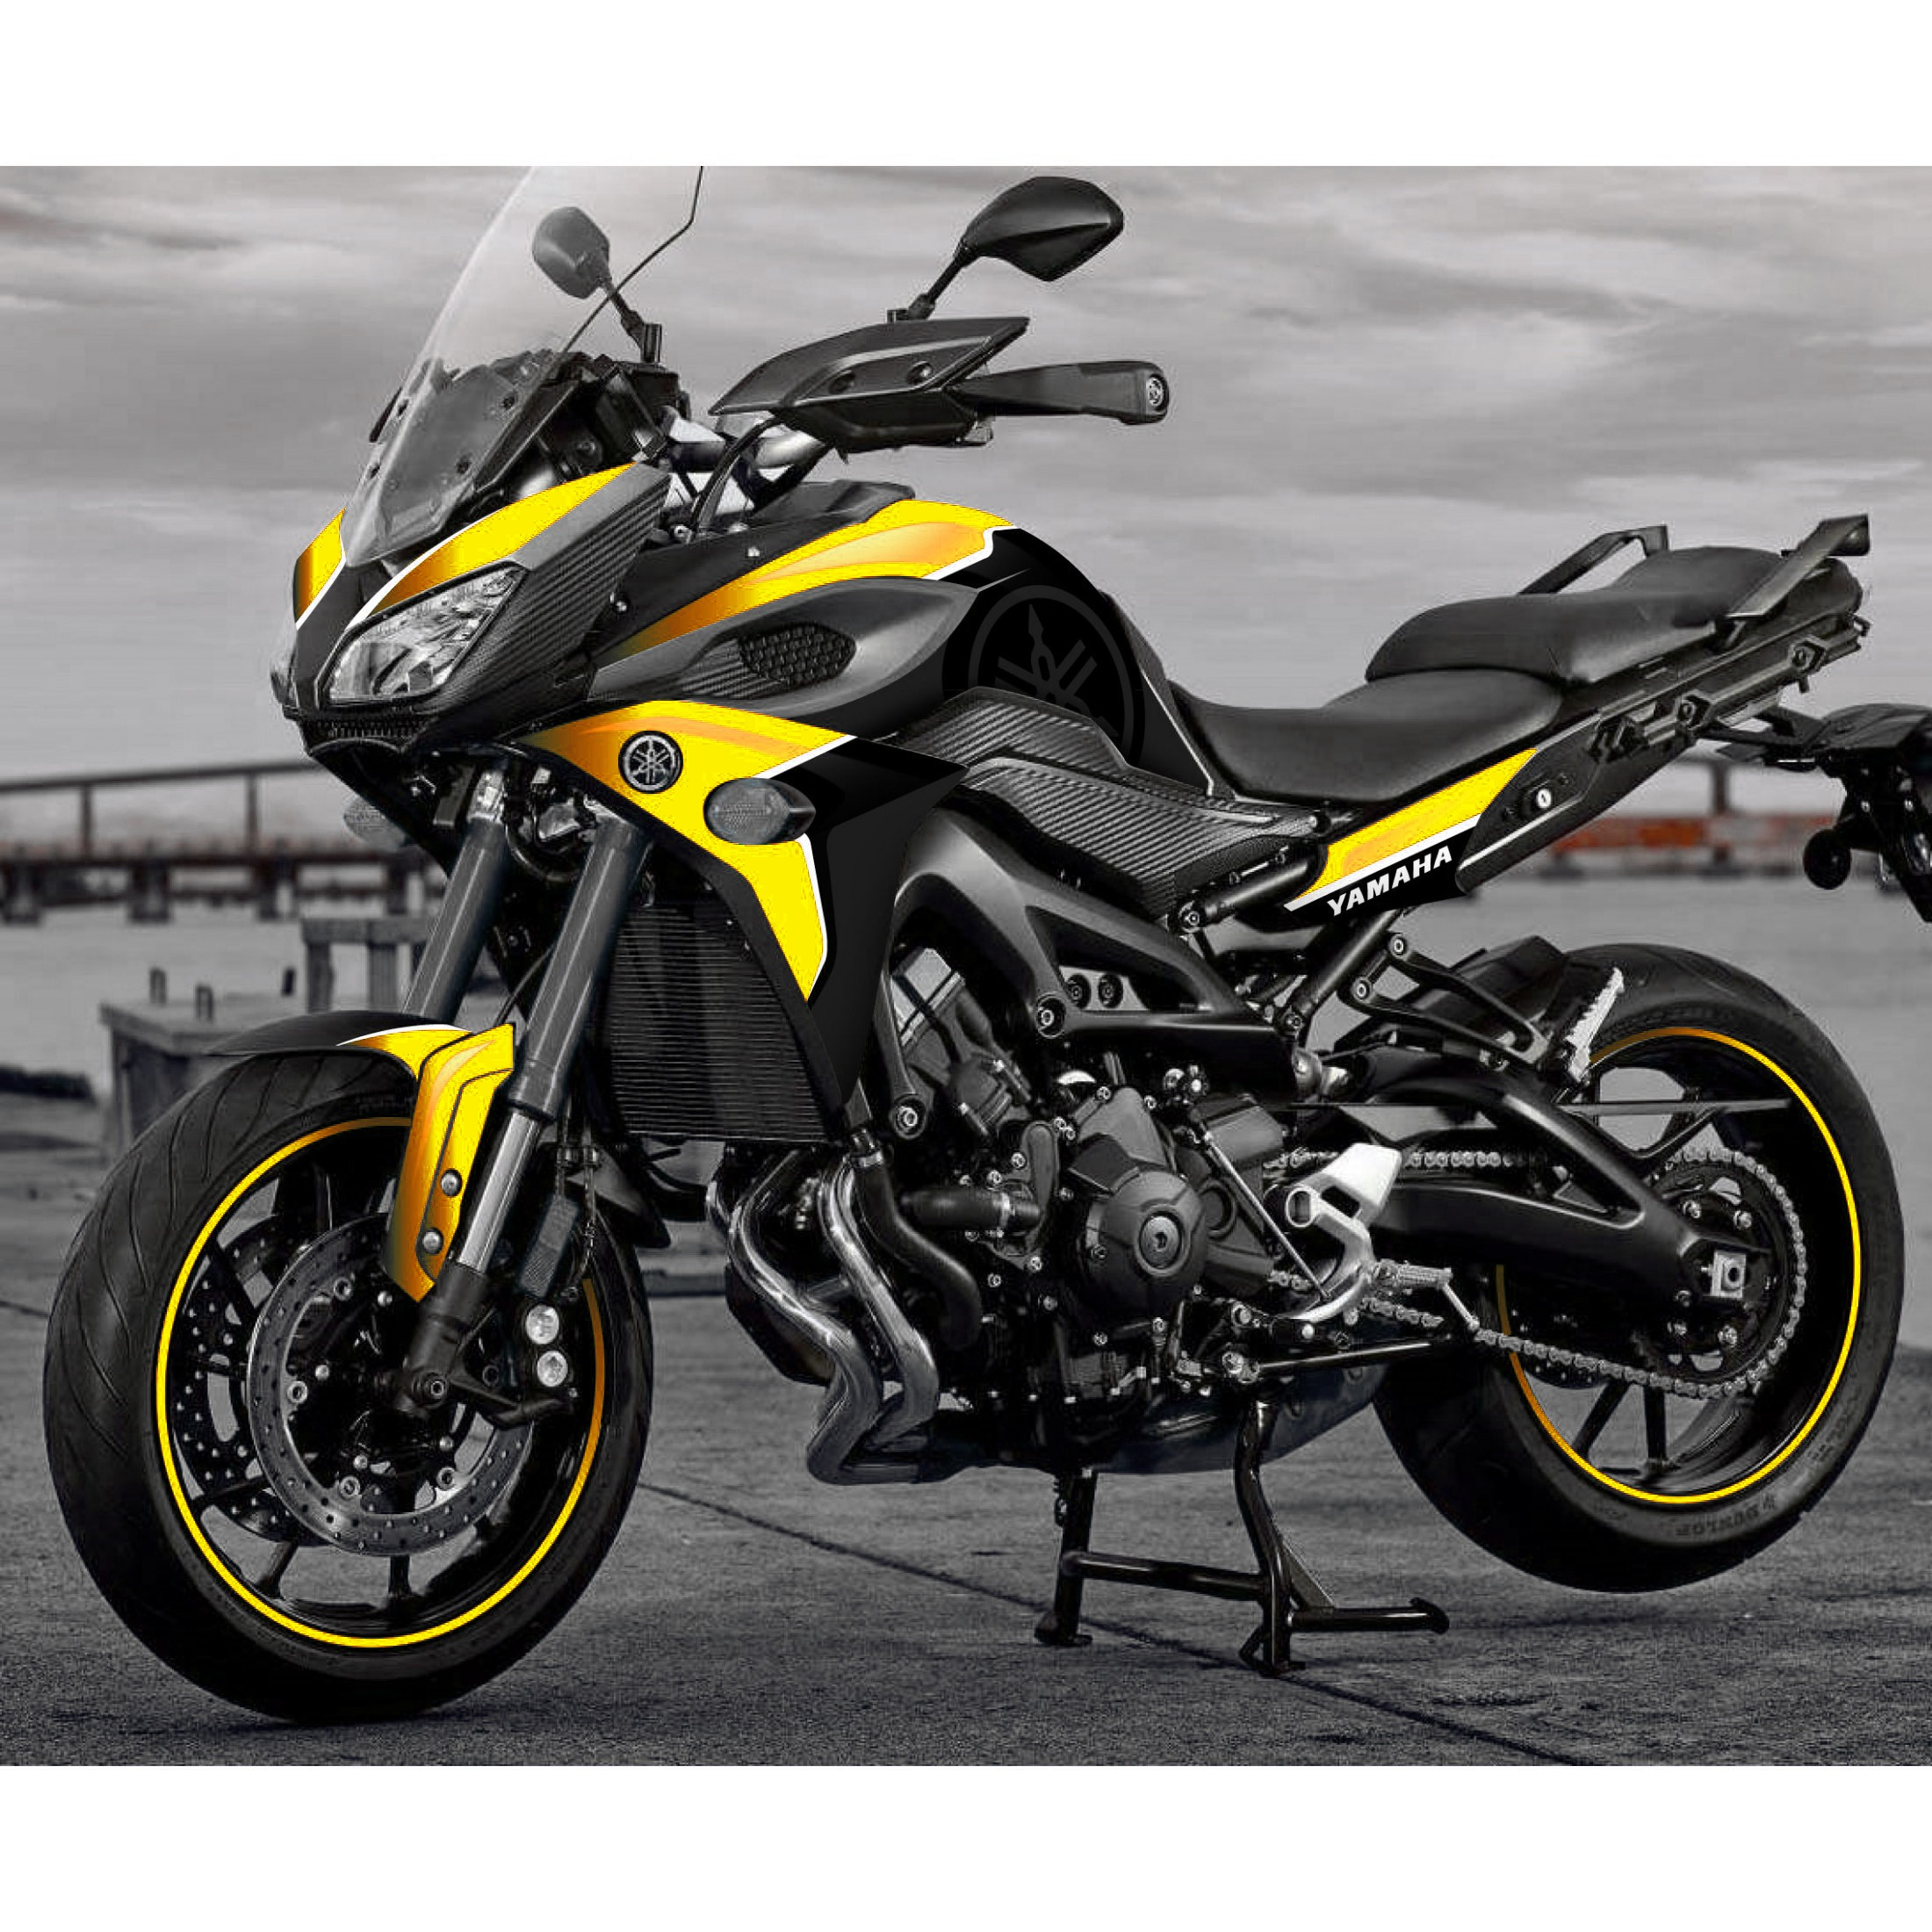 Kit d coration yellow edition yamaha mt 09 tracer for Decoration yamaha